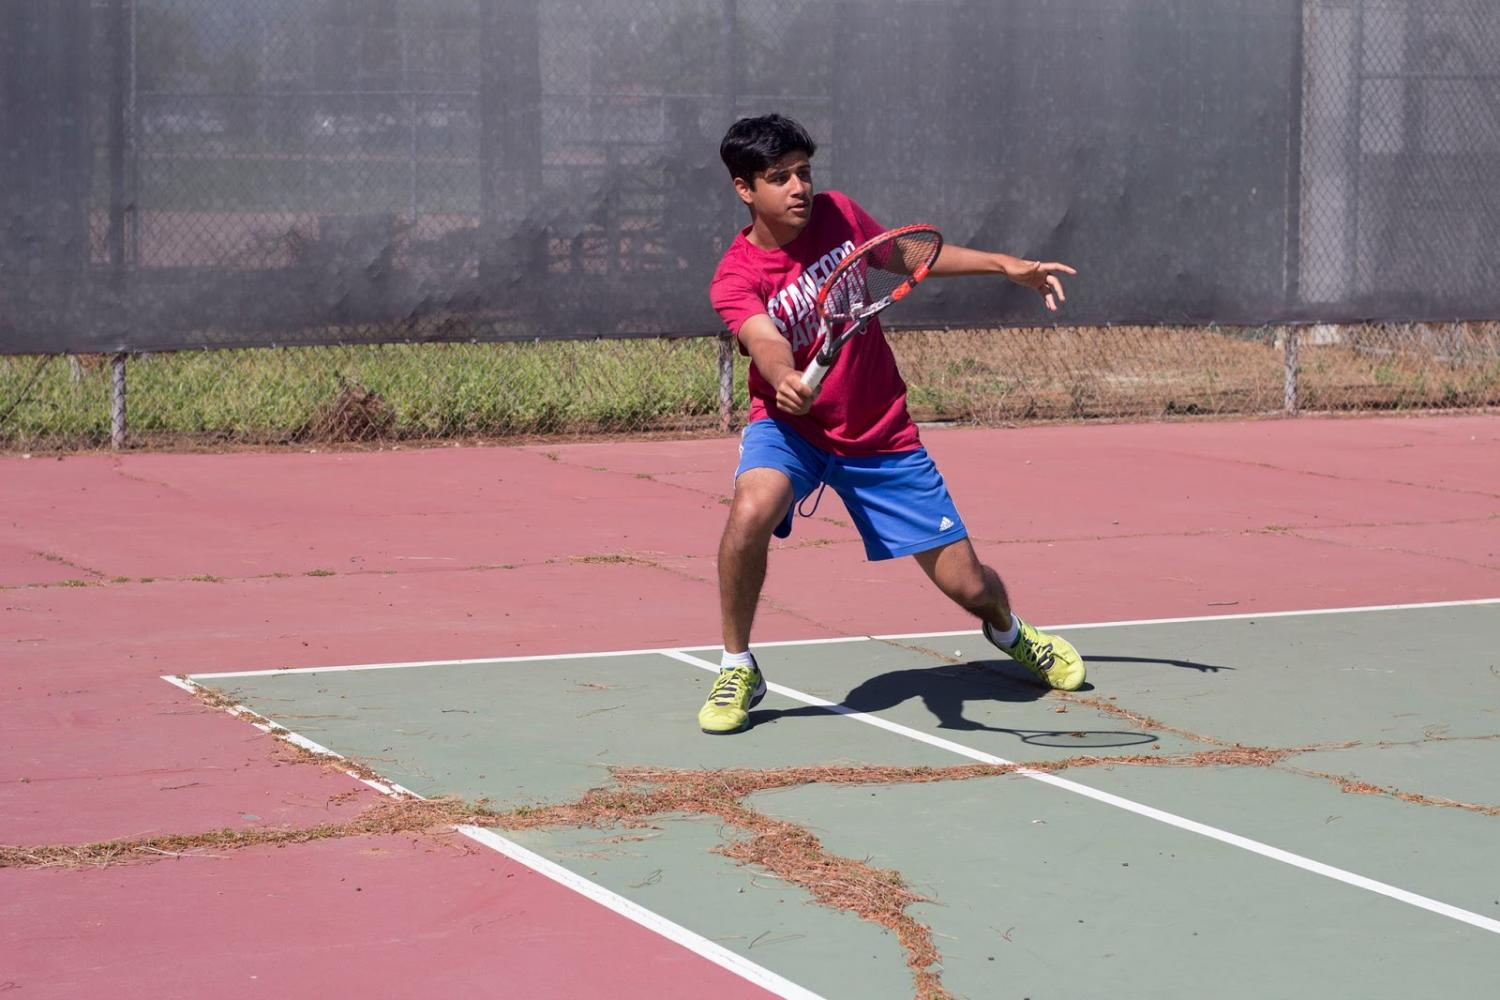 Co-captain Jay Pandit (12),  a varsity singles player finishes a forehand during practice, stepping over the numerous cracks on the courts that haven't been resurfaced in 20 years.